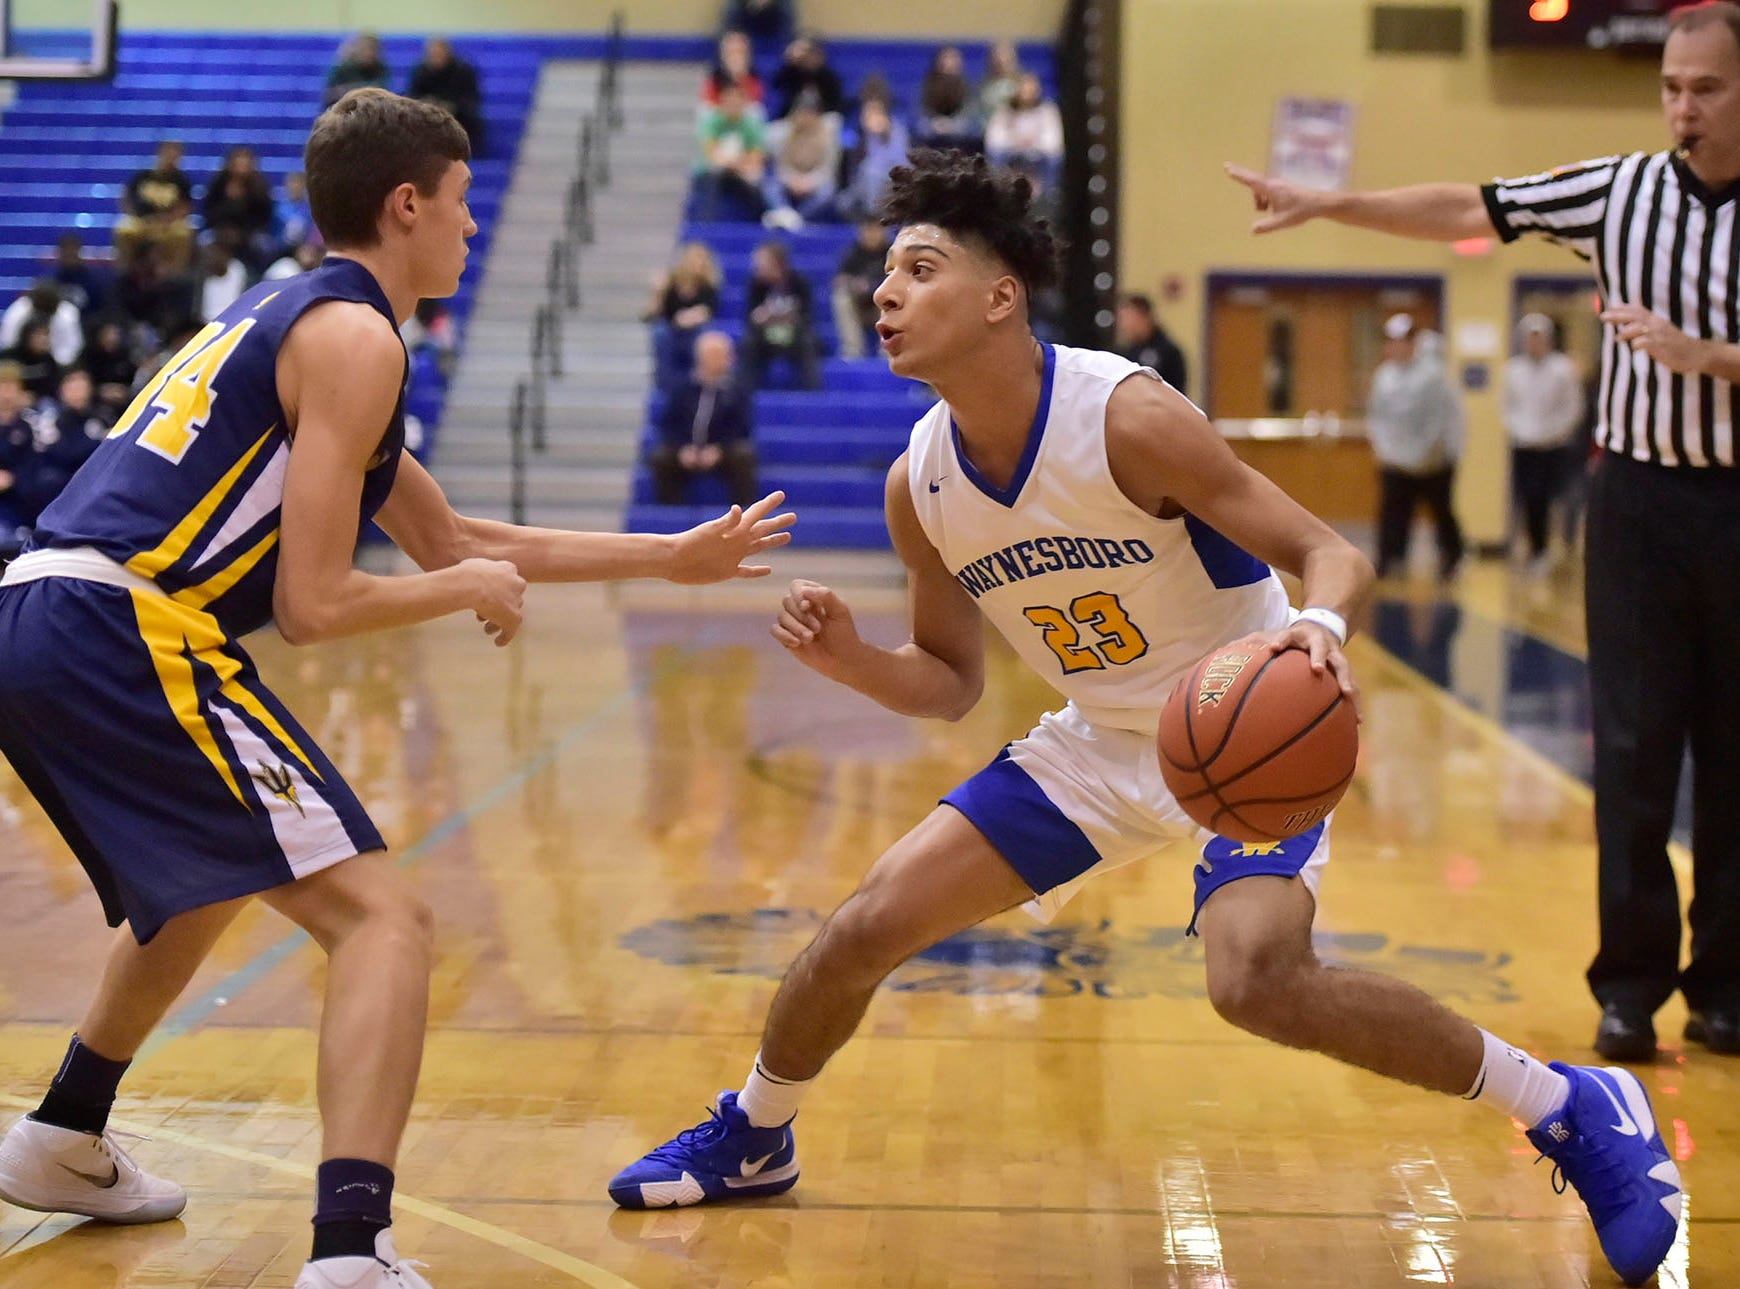 Waynesboro (23) Jay Alvarez works the ball against Greencastle's Nicholas Ehko  during the Franklin County Tip-Off Tournament, Friday, Dec. 7, 2018.